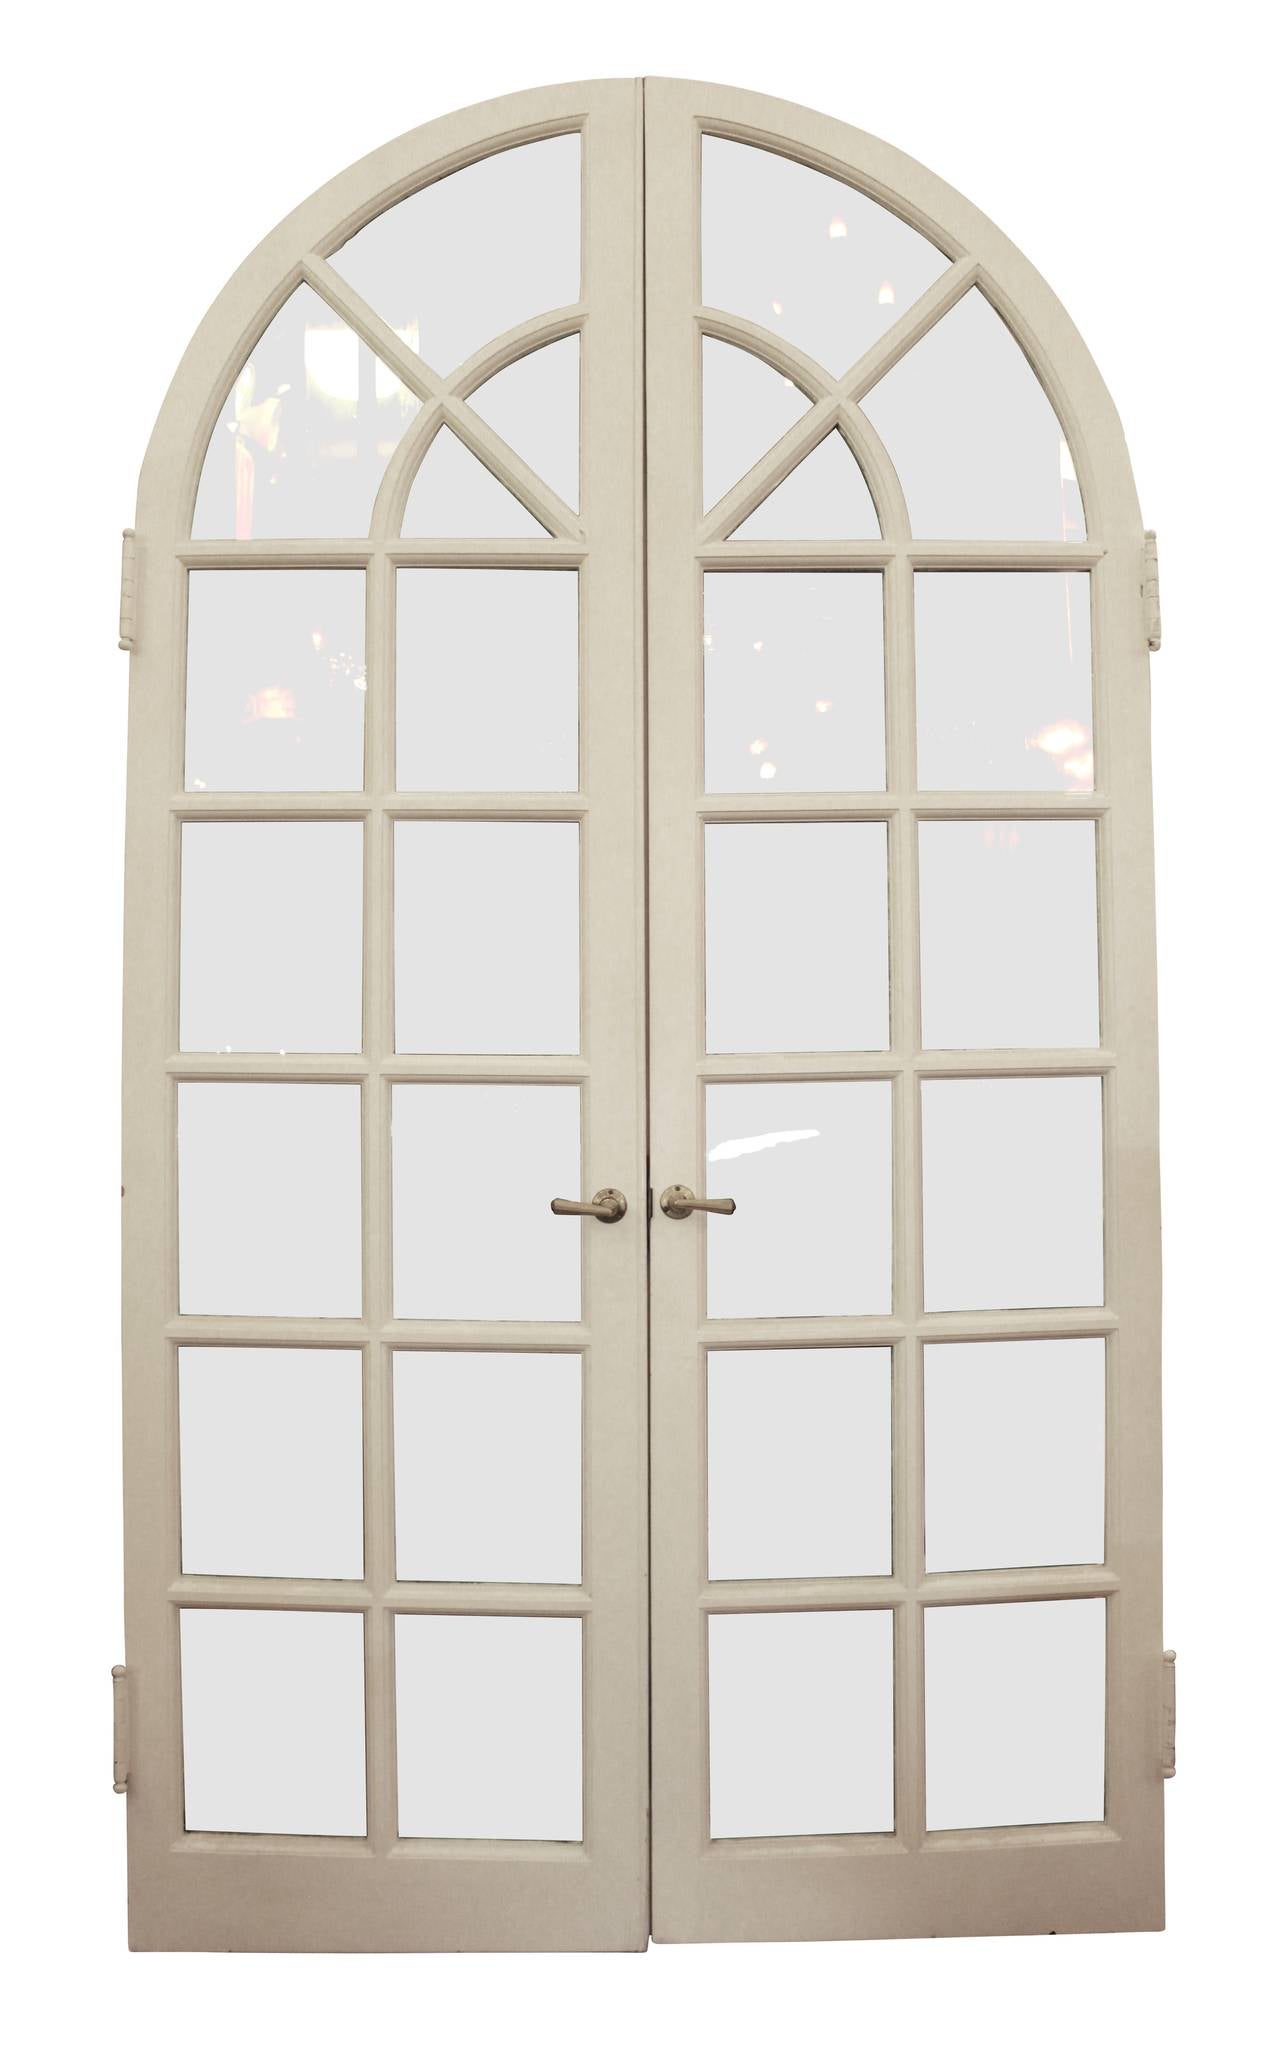 2050 #3F3126 This Wooden White Arched French Doors Is No Longer Available. picture/photo Arched Doors With Glass 42191280